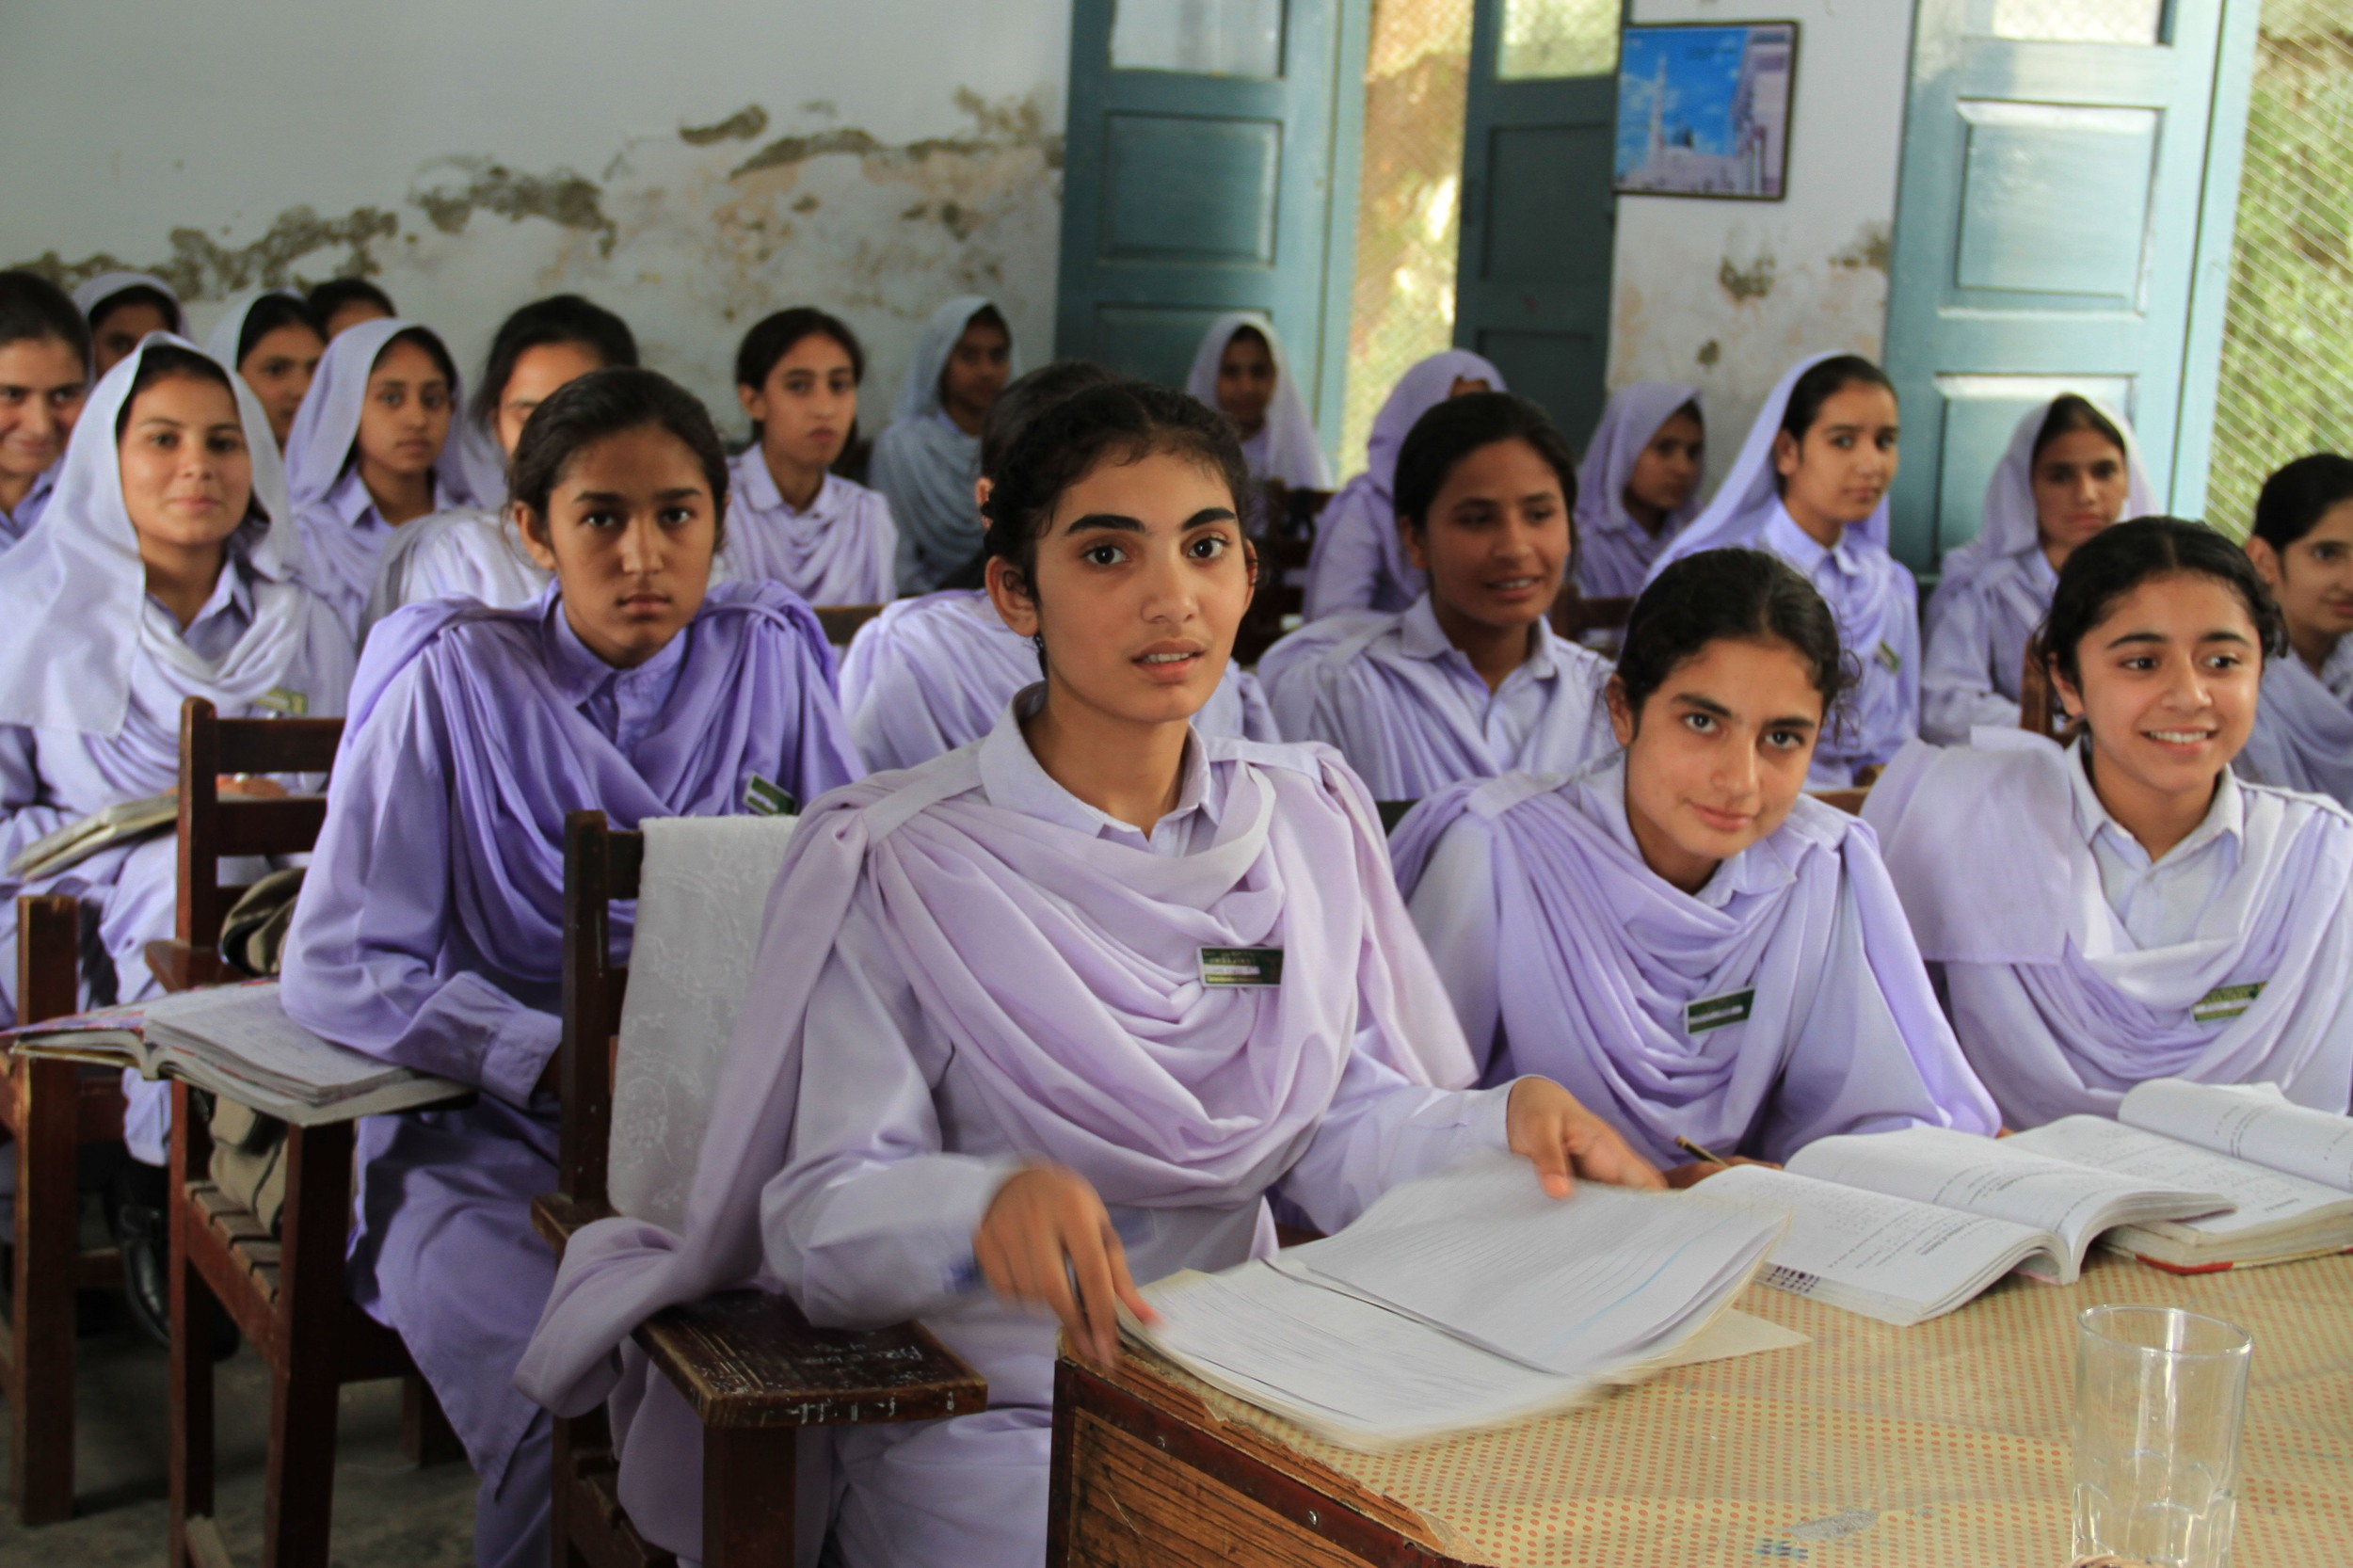 File:Girls in school in Khyber Pakhtunkhwa, Pakistan (7295675962).jpg